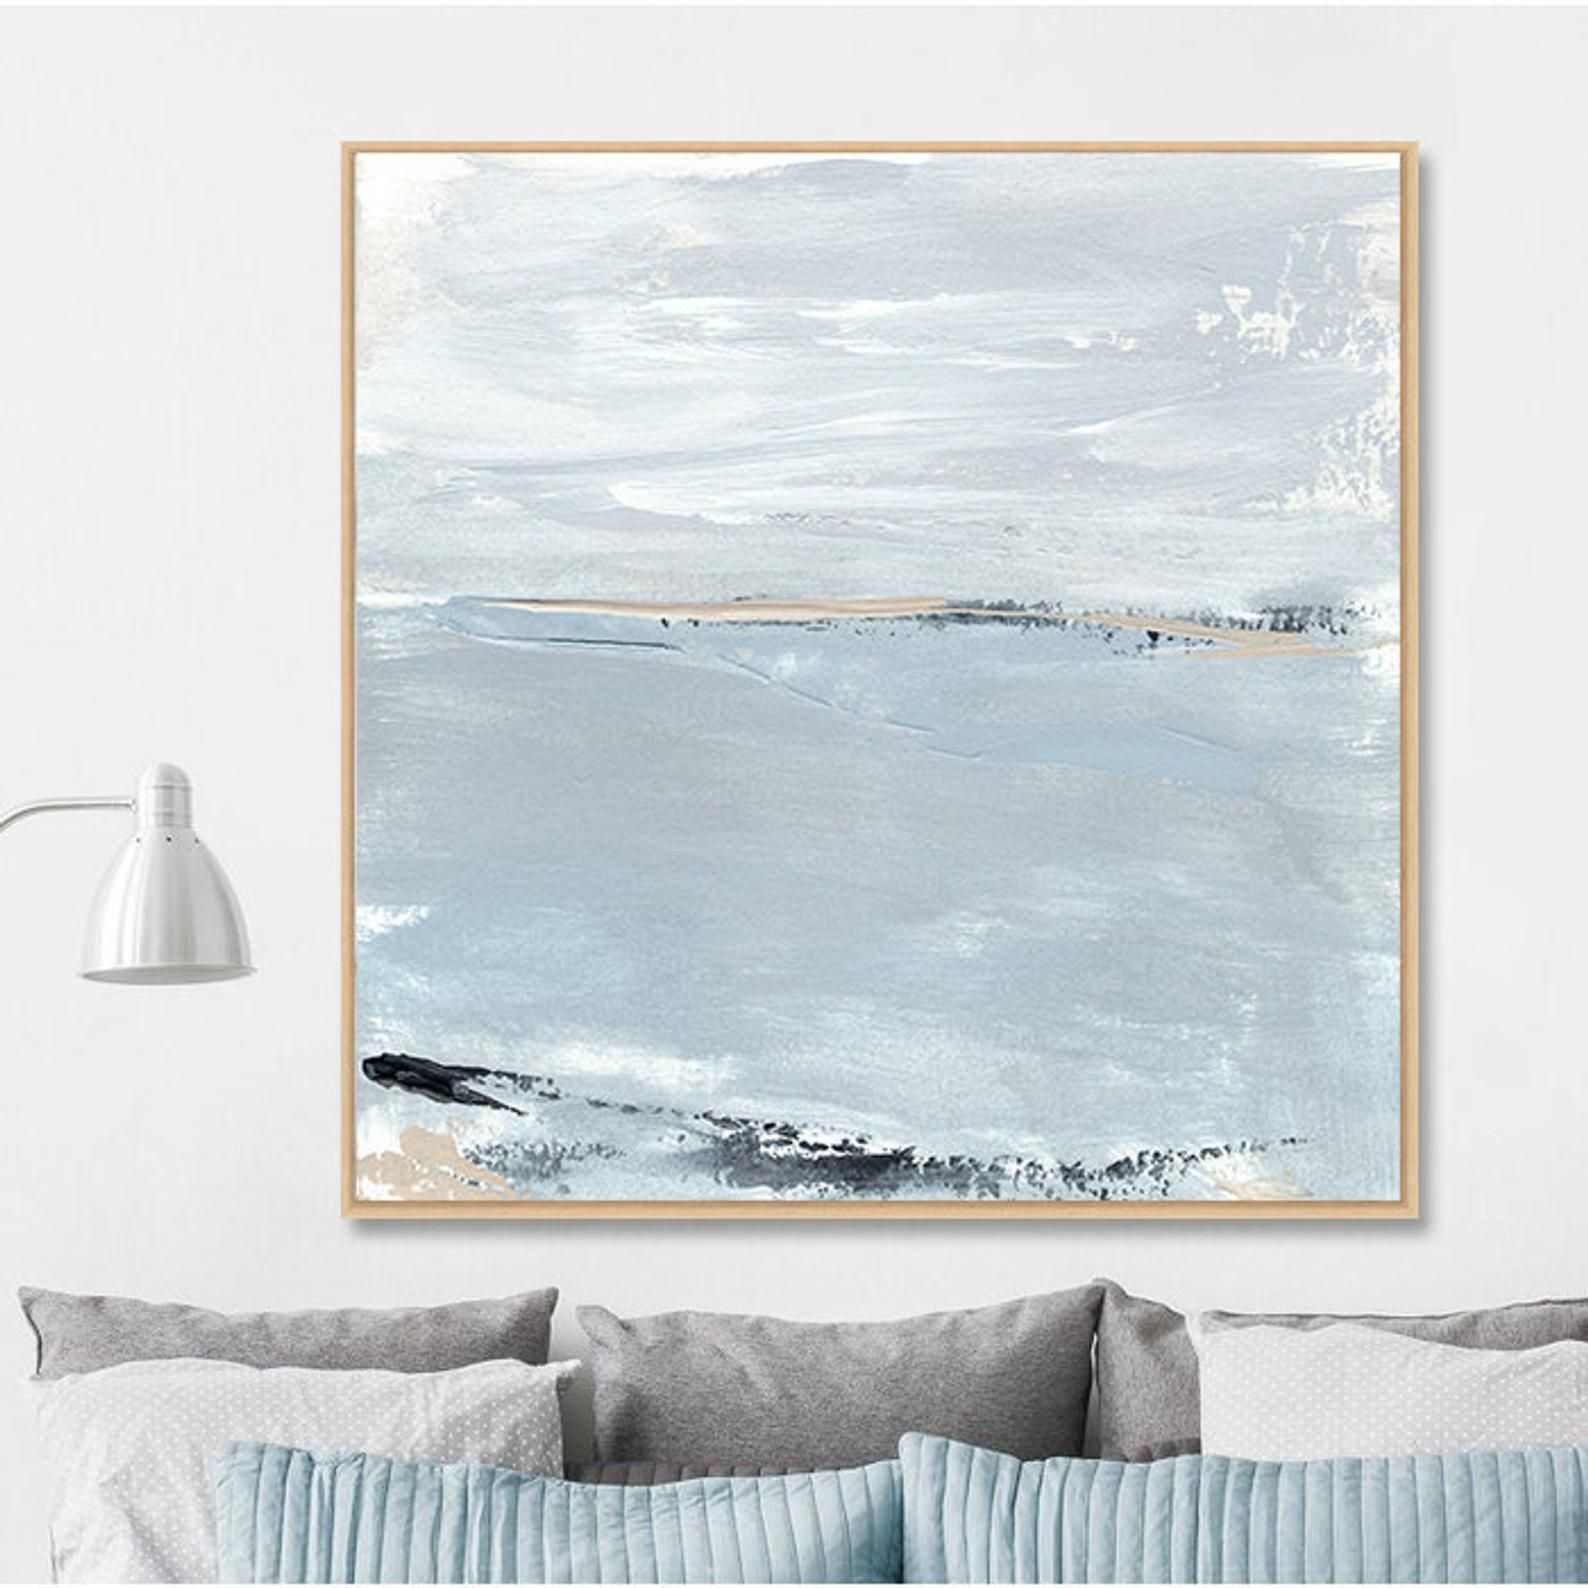 Large Framed Art Canvas Print Large Abstract Landscape Float Etsy Large Framed Wall Art Large Framed Art Affordable Wall Art